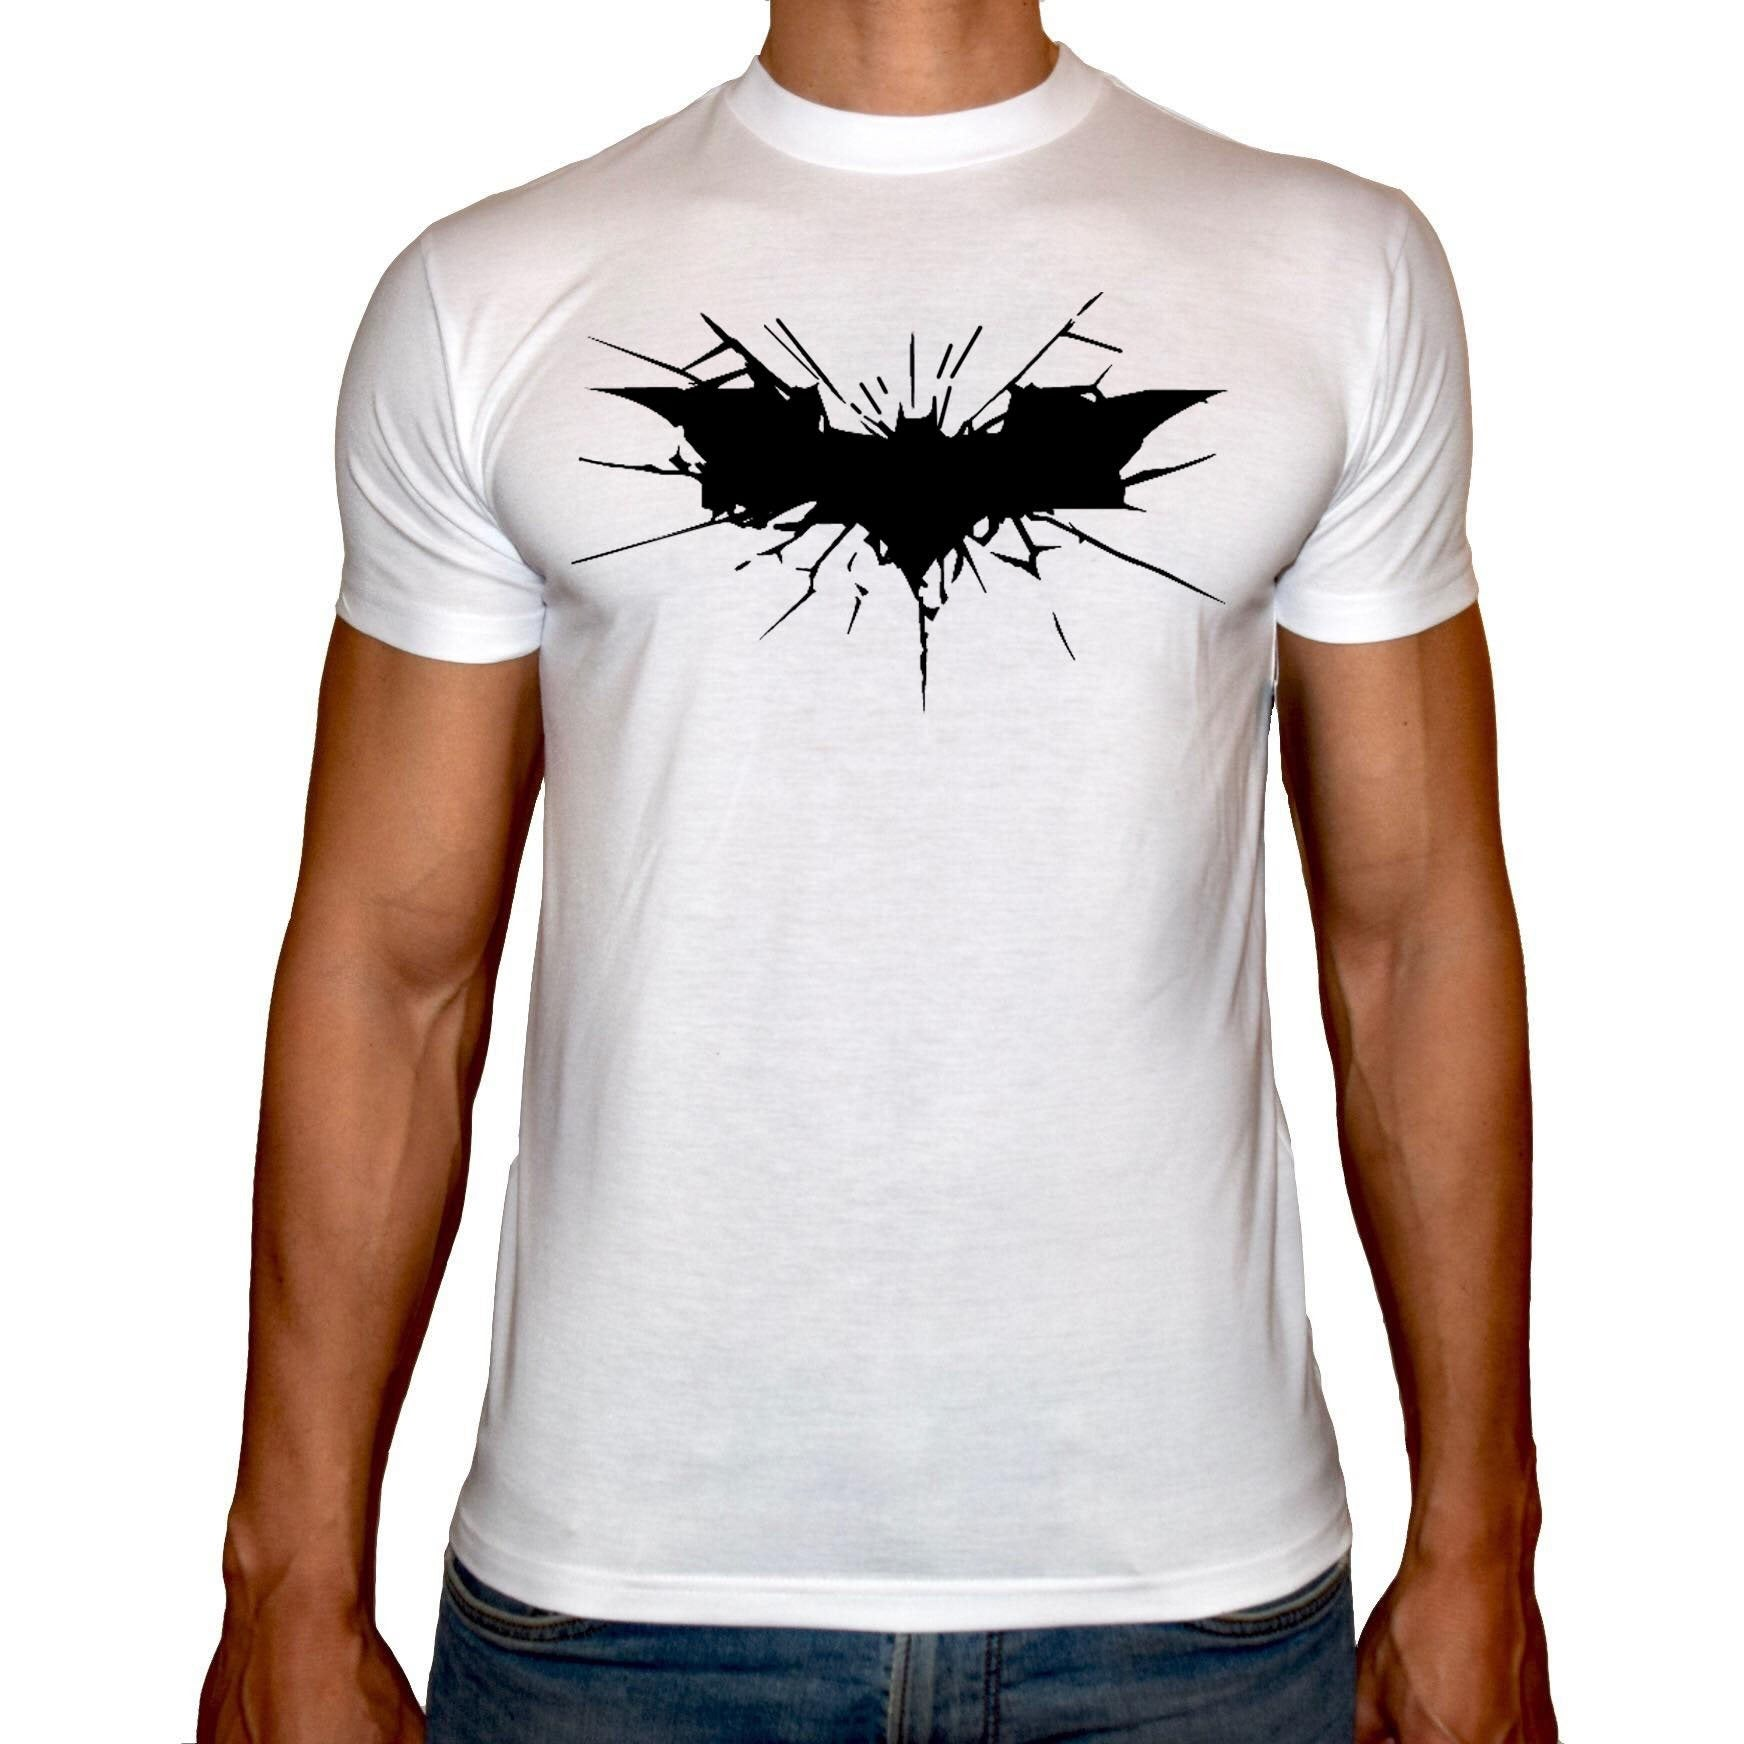 Phoenix WHITE Round Neck Printed T-Shirt Men (Batman)